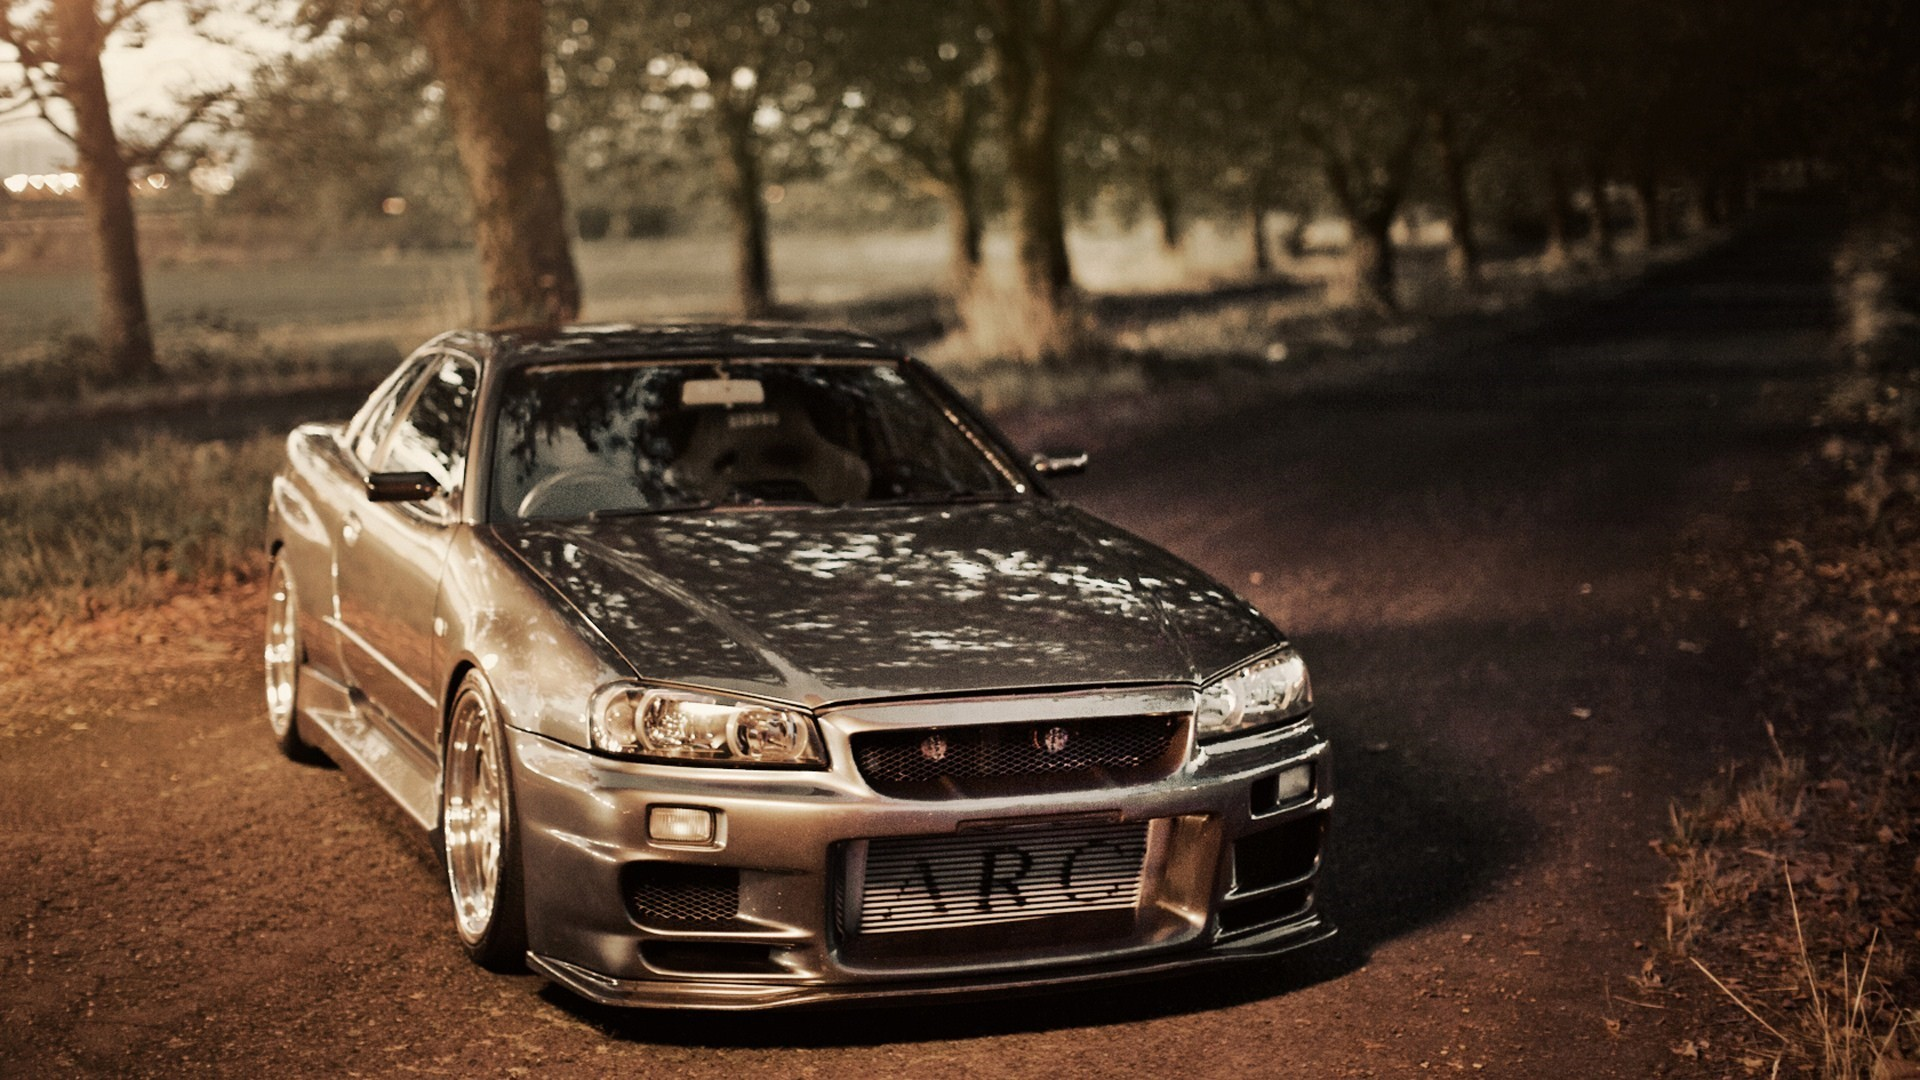 Nissan Skyline Gt-r R34 Tuning Road Photo Hd Wallpaper | Wallpaper .